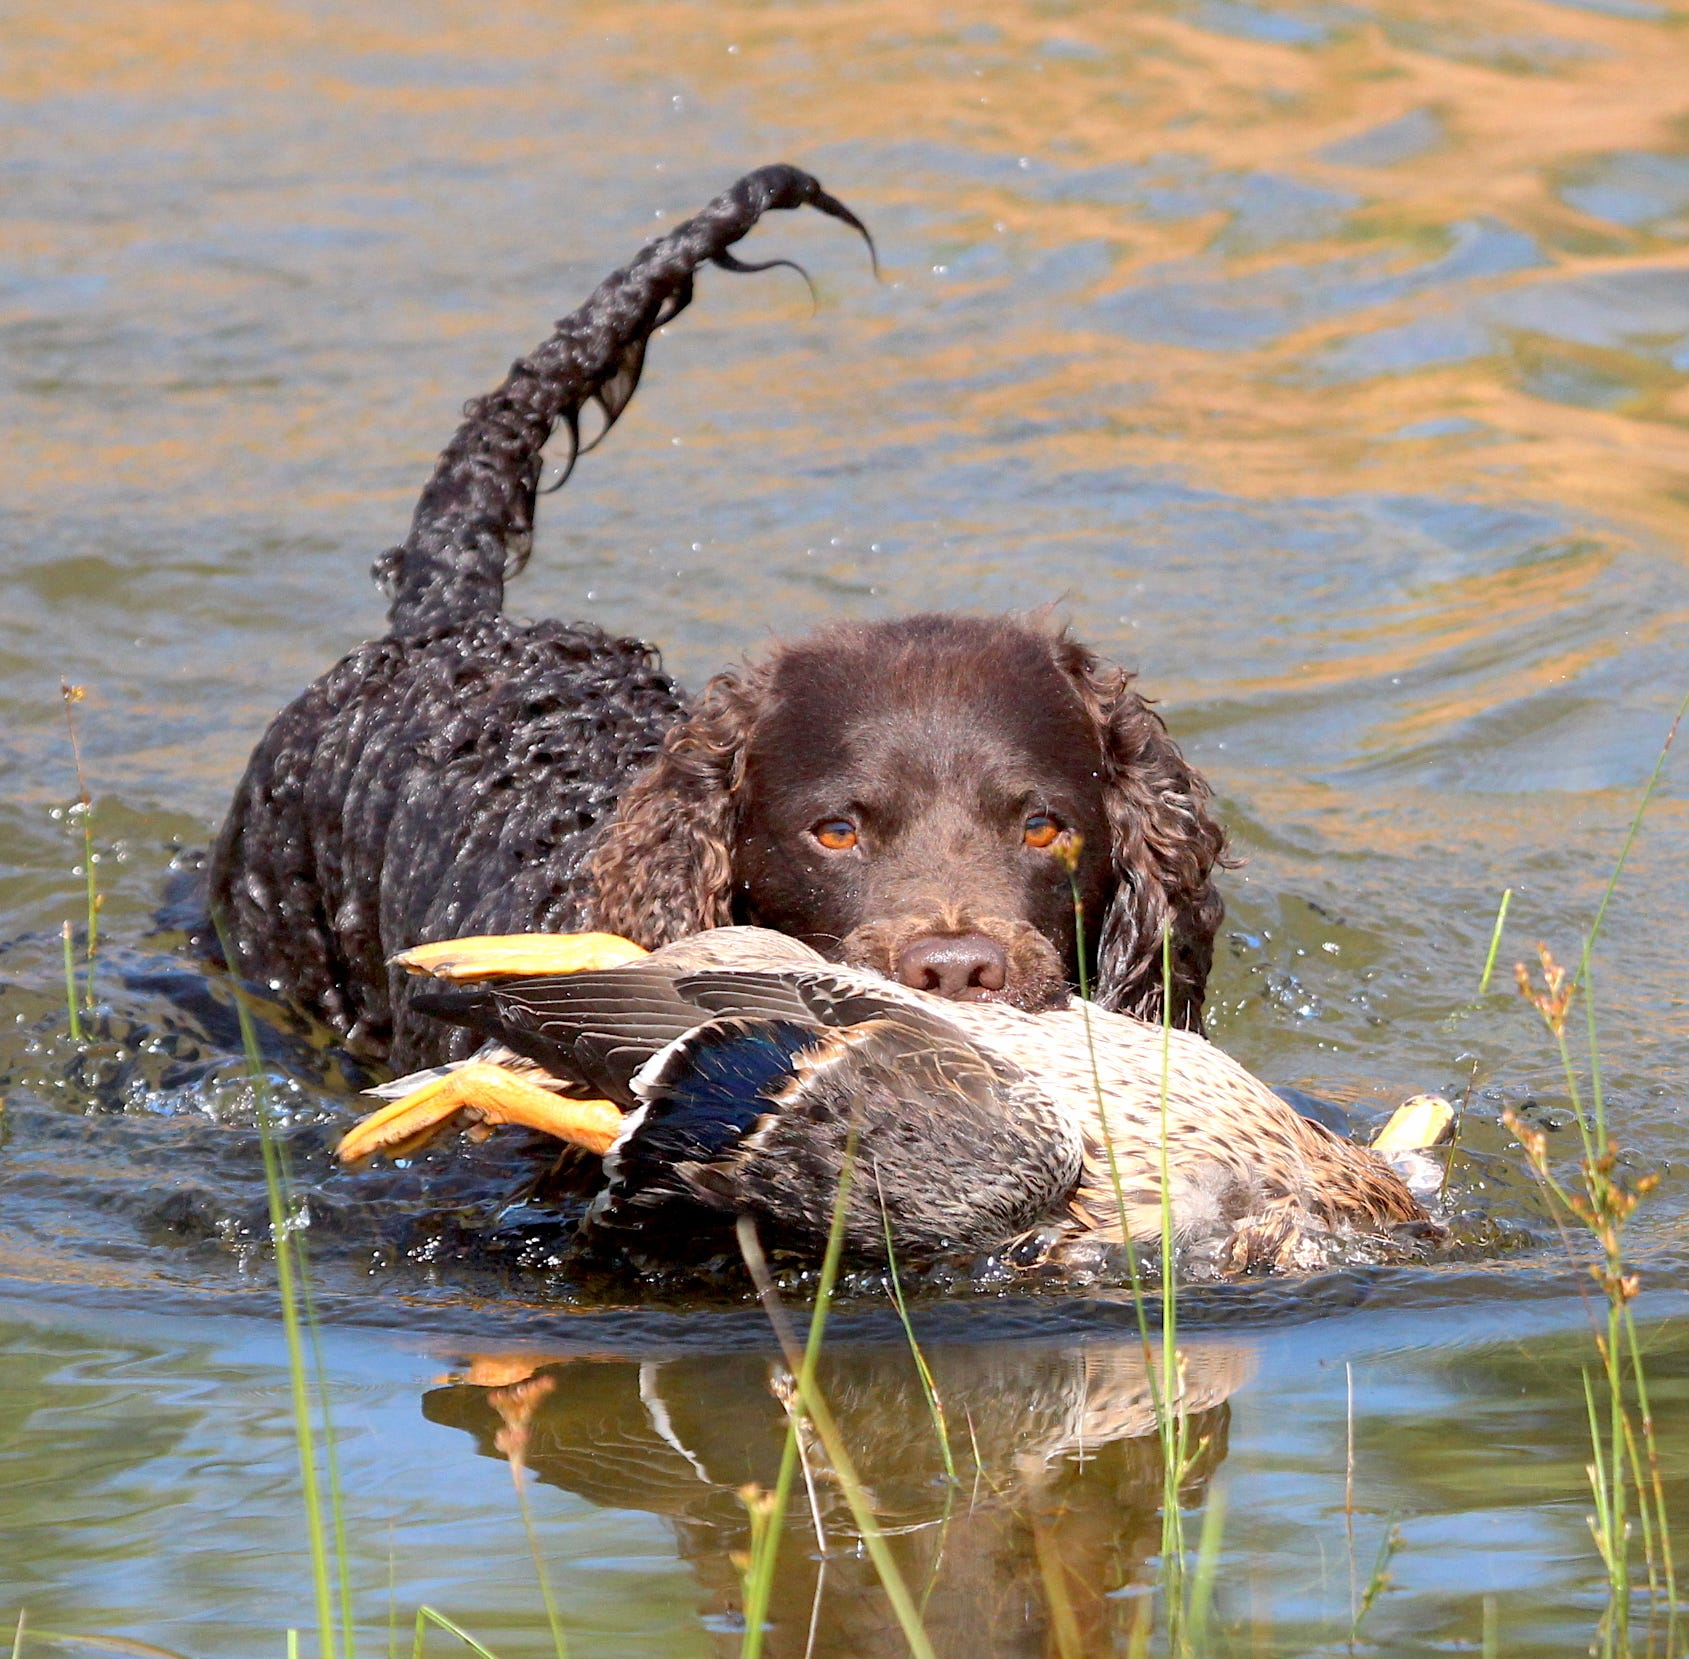 An American water spaniel makes a retrieve at the 2018 American Water Spaniel Club National Specialty Championships in Gordon, Wis. The American water spaniel is the official Wisconsin dog breed. The American Water Spaniel Club event was held Aug. 8 to 12.